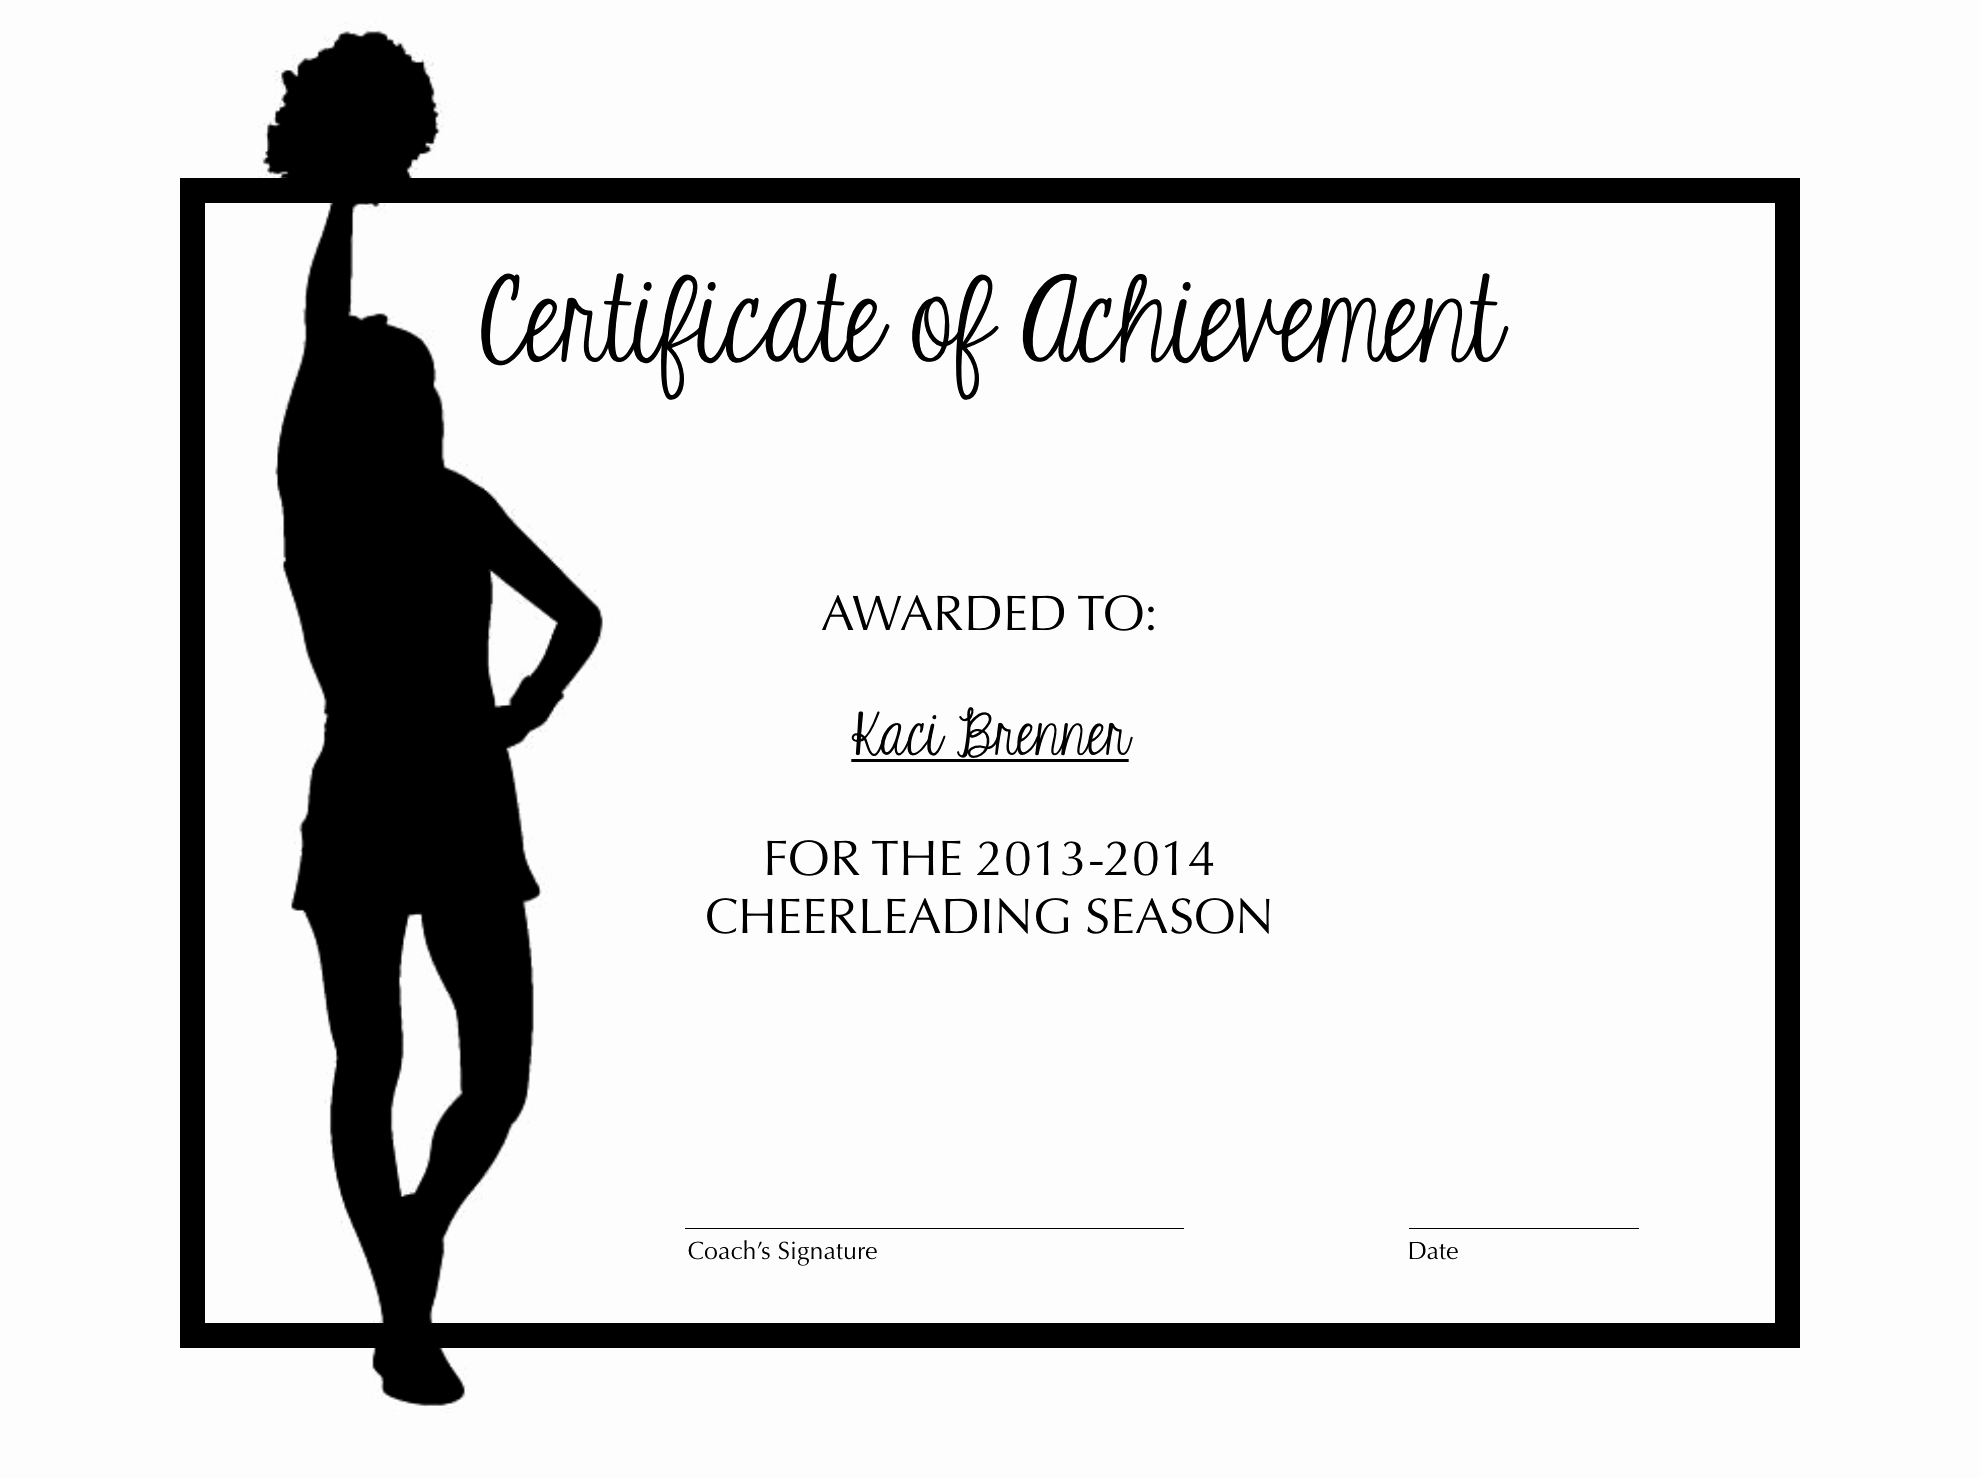 Basketball Camp Certificate Template Inspirational Cheerleading Certificate Of Achievement Cheer